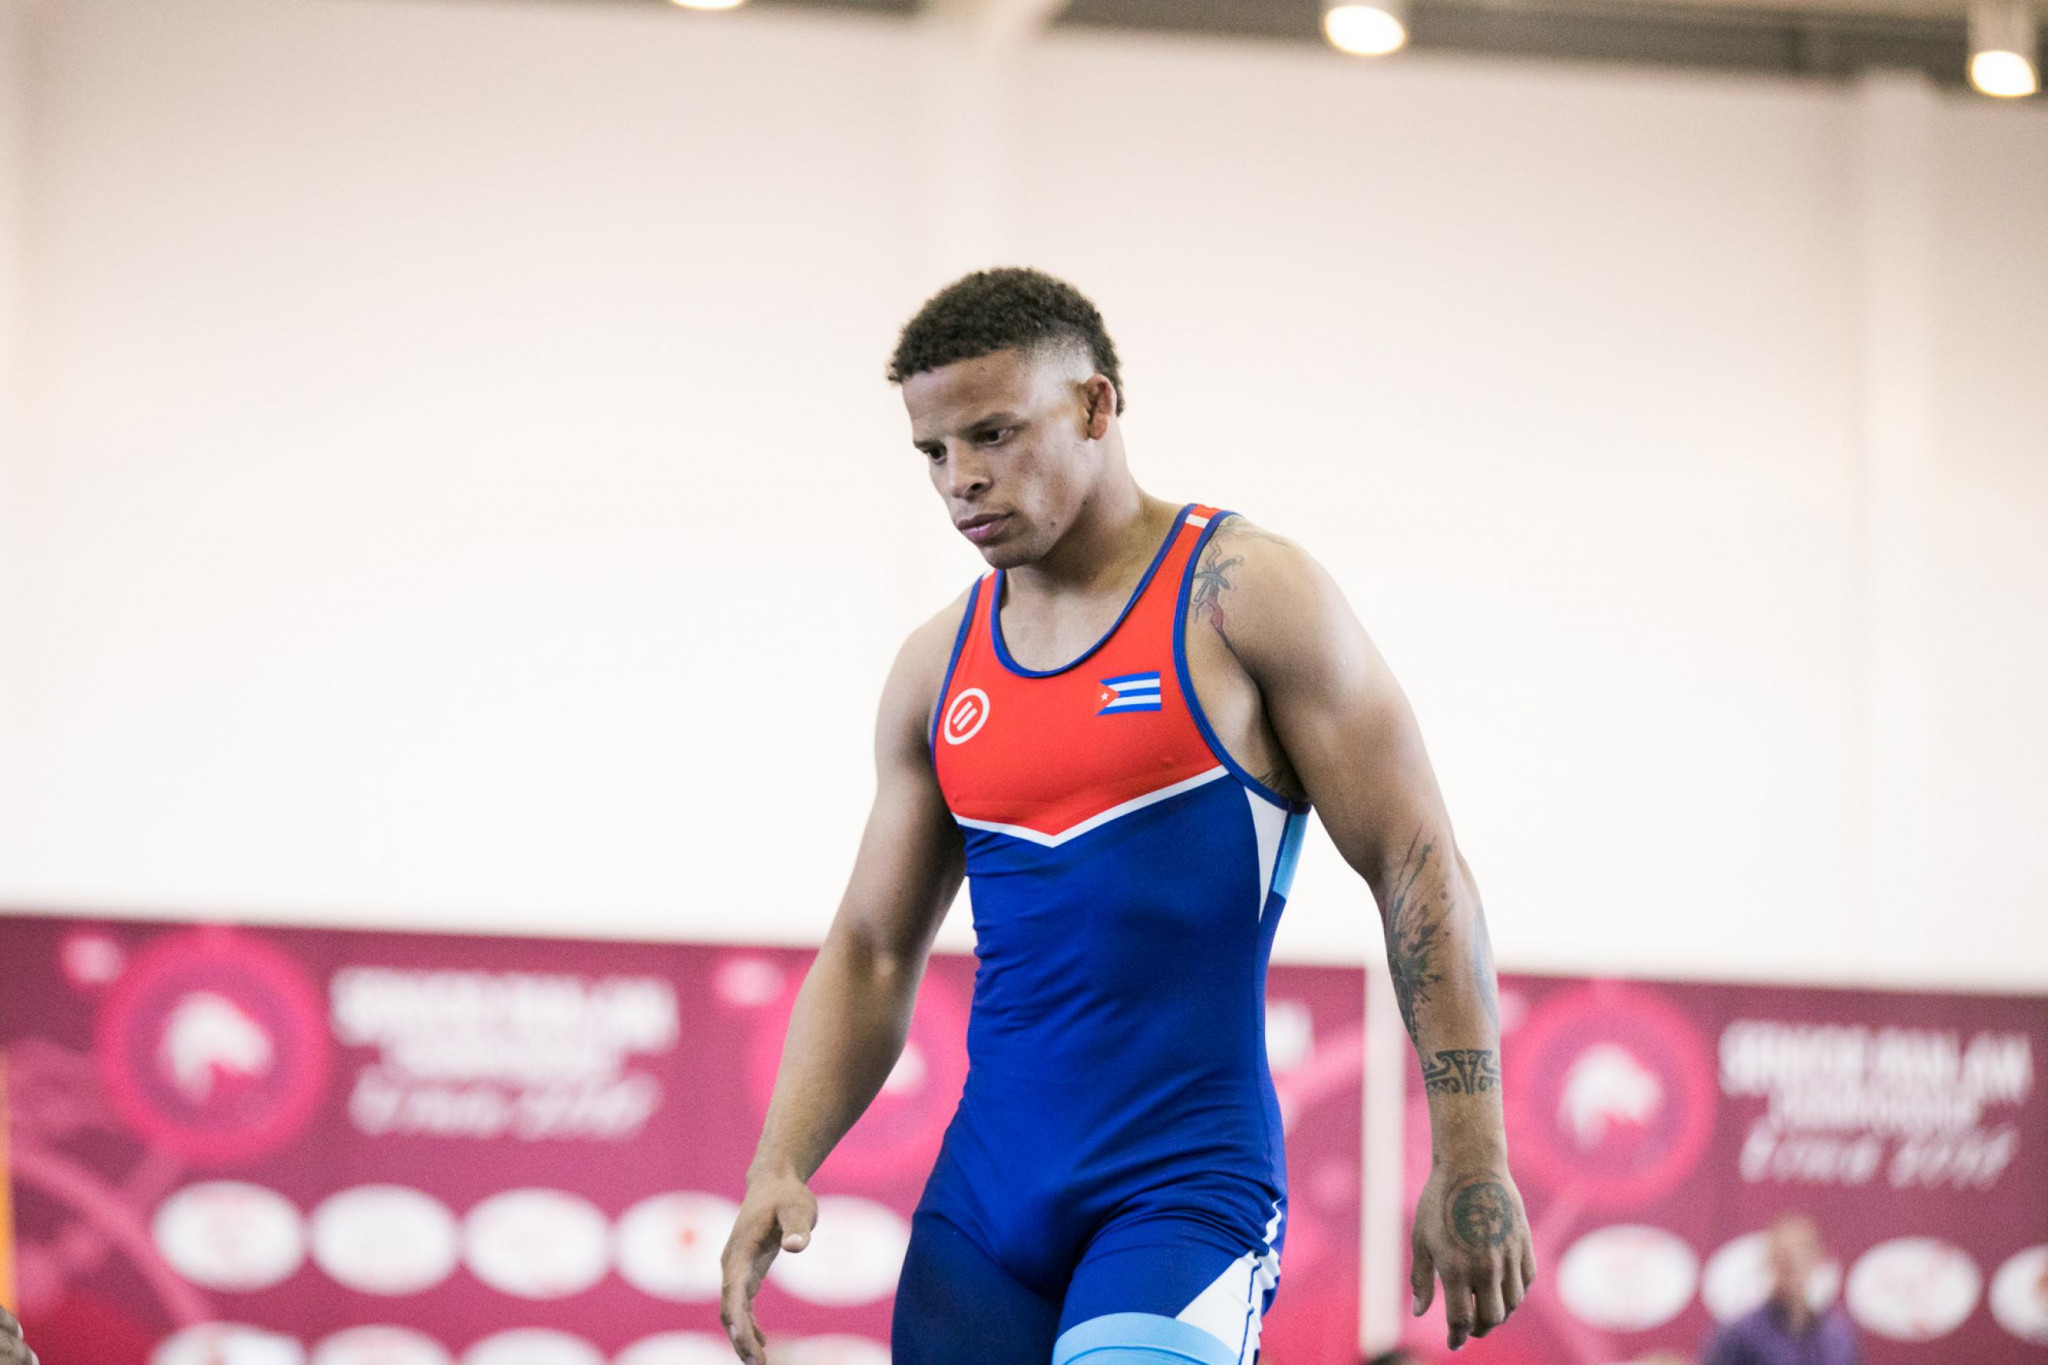 Ismael Borrero Molina claimed gold on the opening day of competition ©UWW